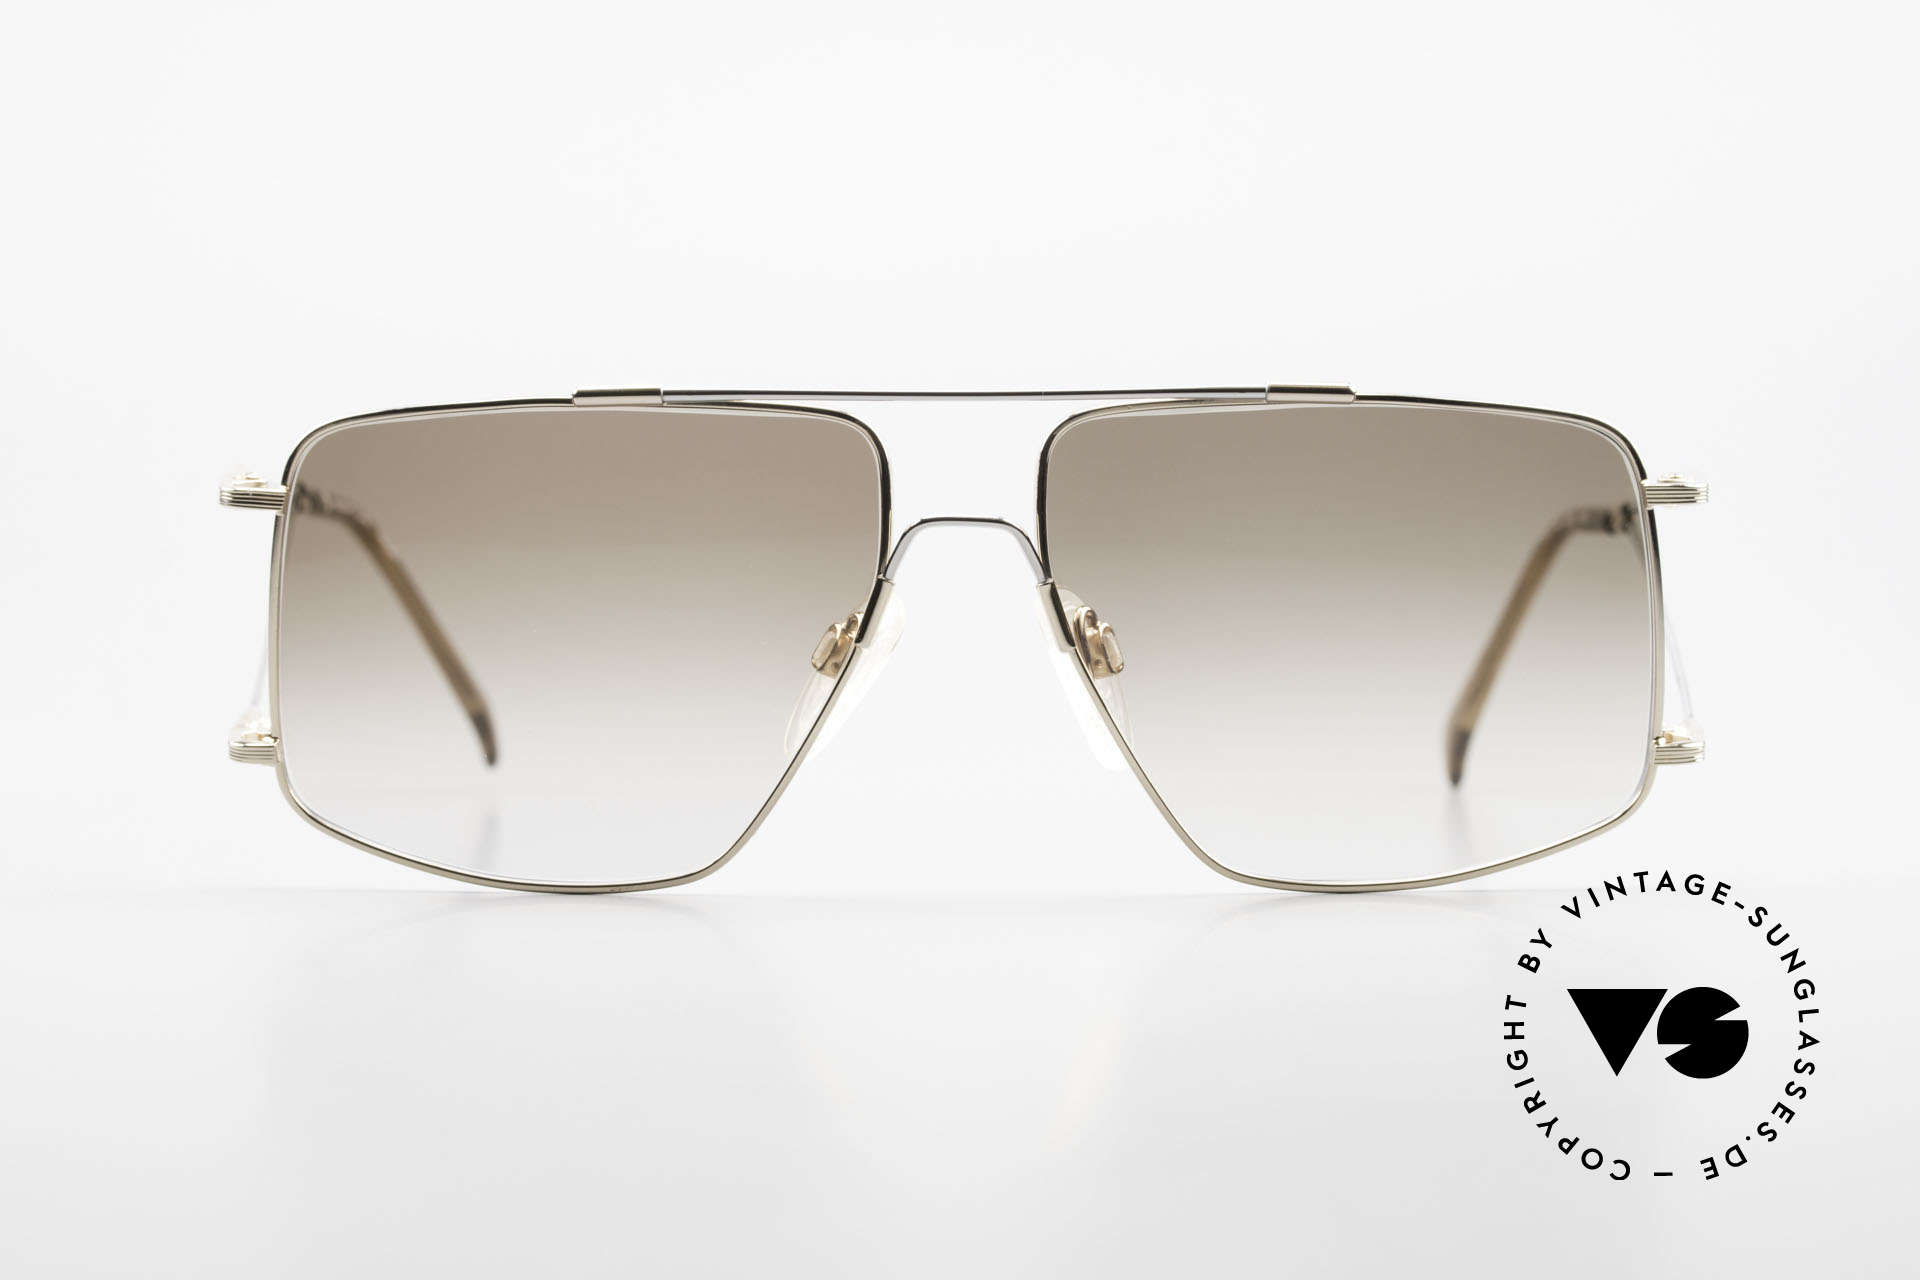 Neostyle Jet 40 Titanflex Vintage Sunglasses, incredible comfort thanks to TITANFLEX material!, Made for Men